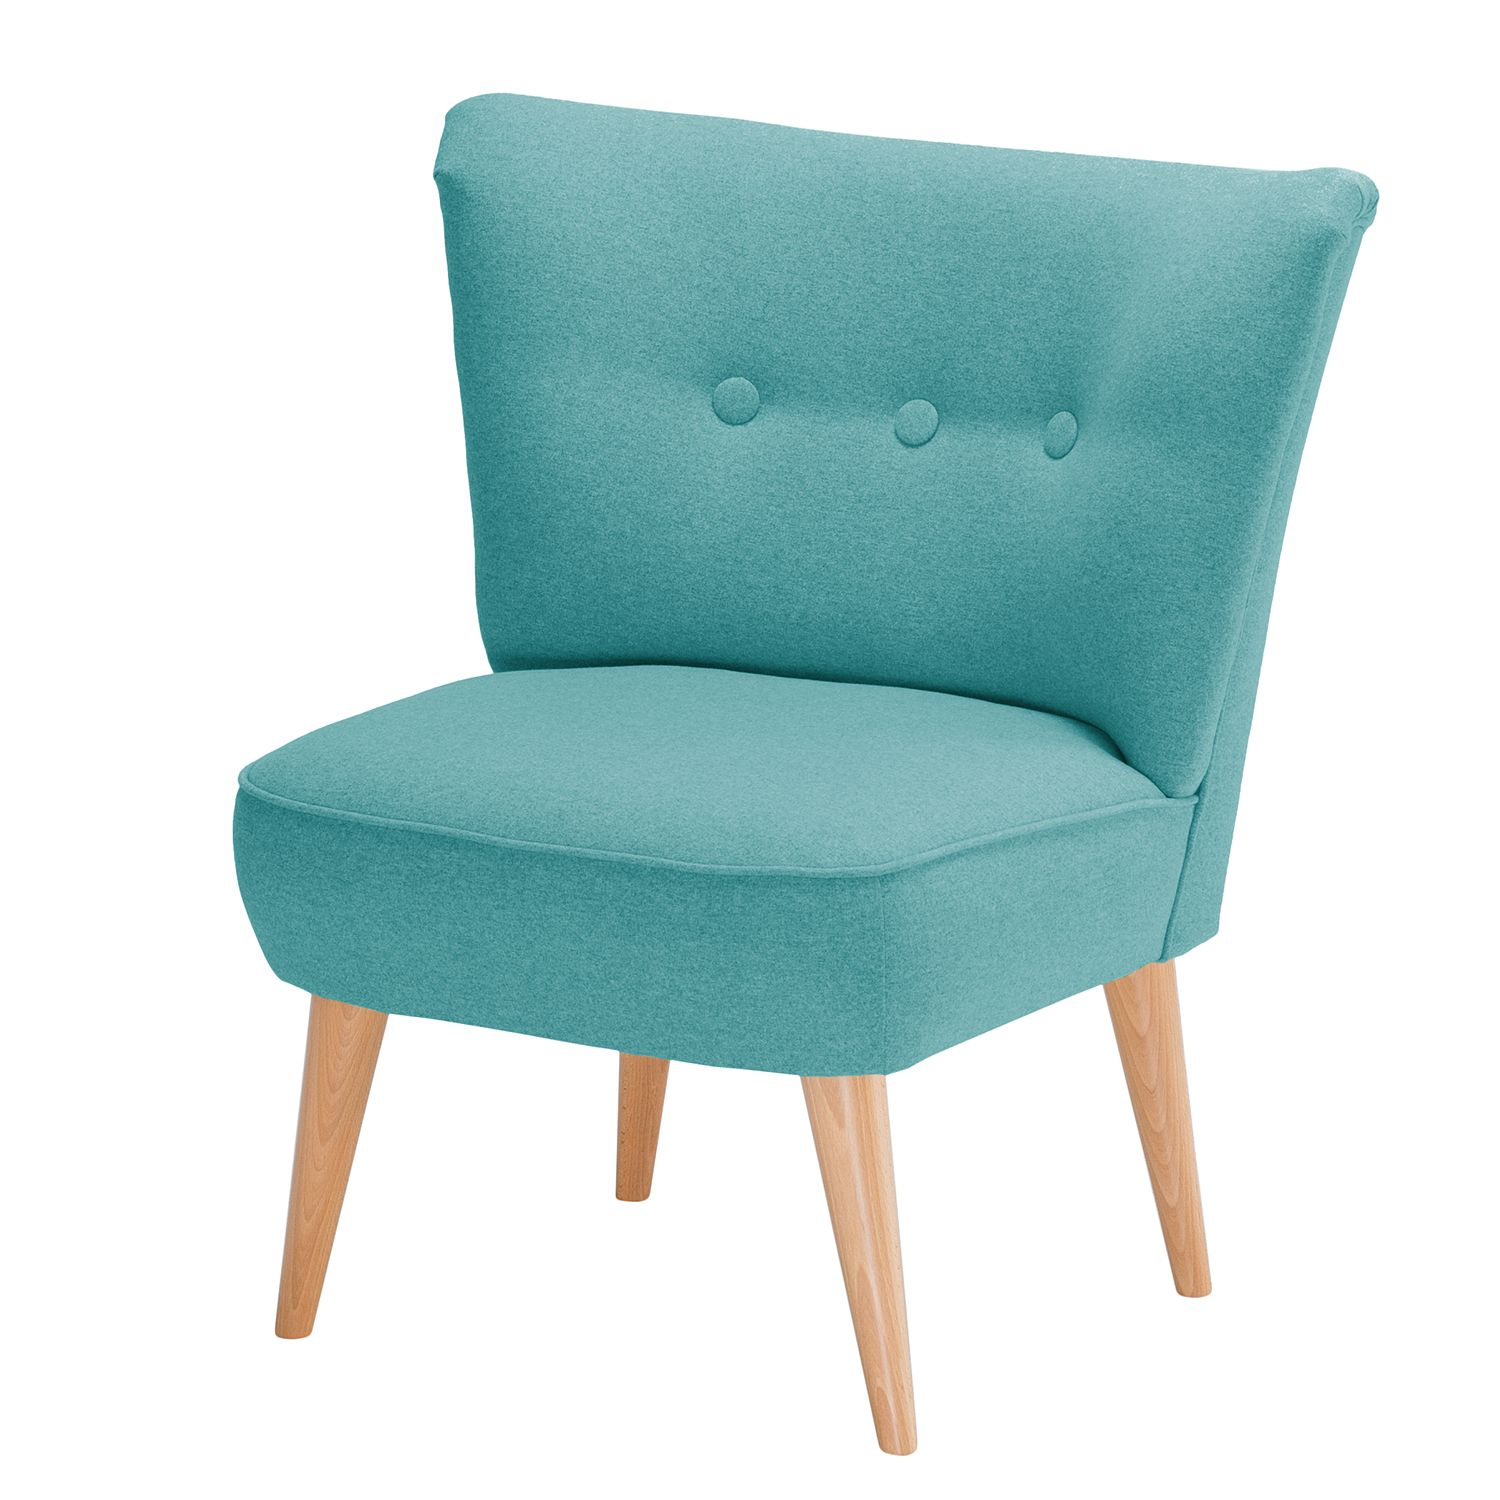 Fauteuil Bumberry I vilt - Turquoise, Morteens